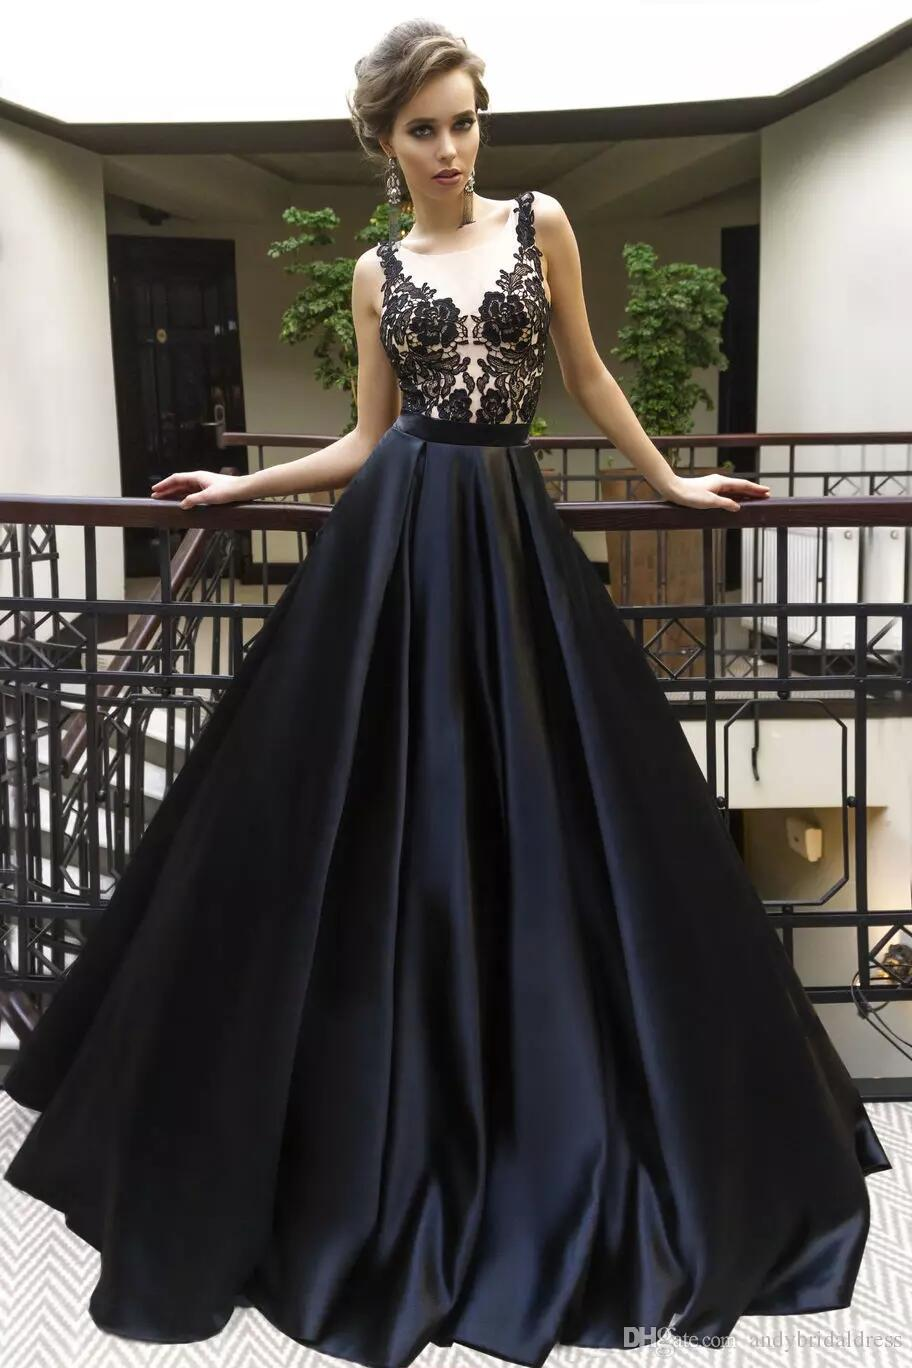 Black Prom Dress 2018Prom DressesEvening Gown Graduation Party Dresses Prom Dresses For ...